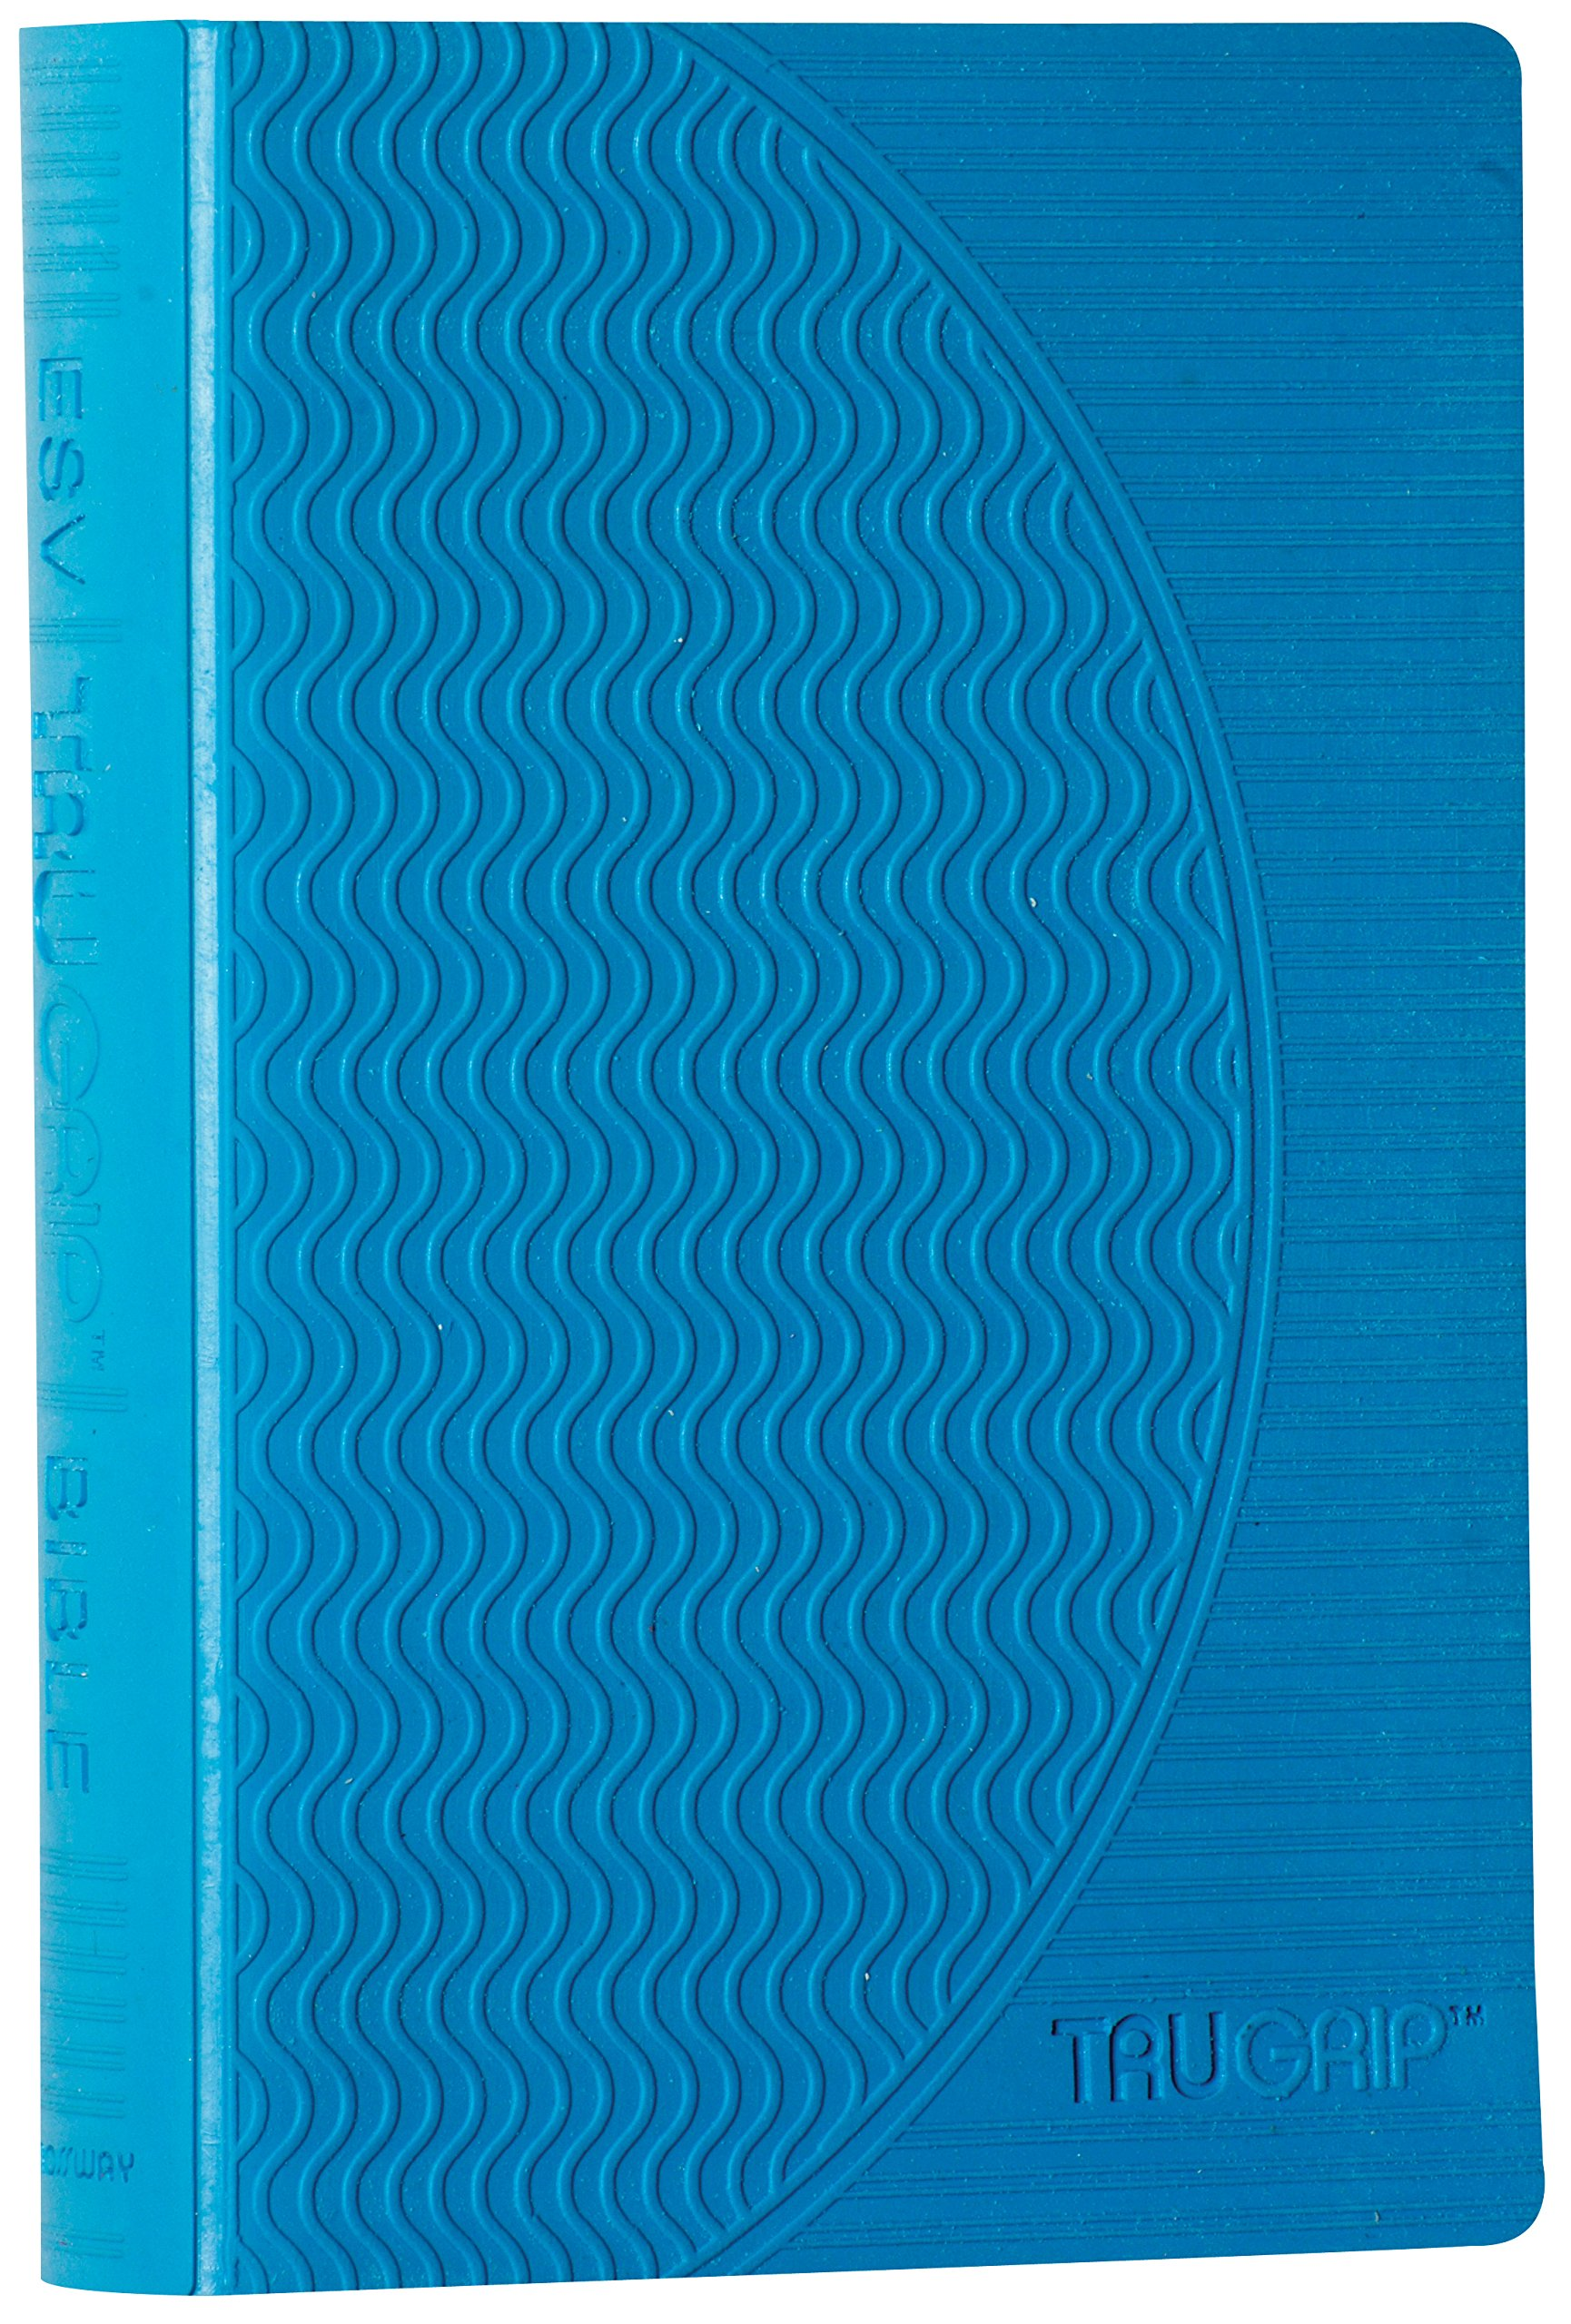 ESV Compact TruGrip Bible, Rubber Cover, Blue, Red Letter Text ebook